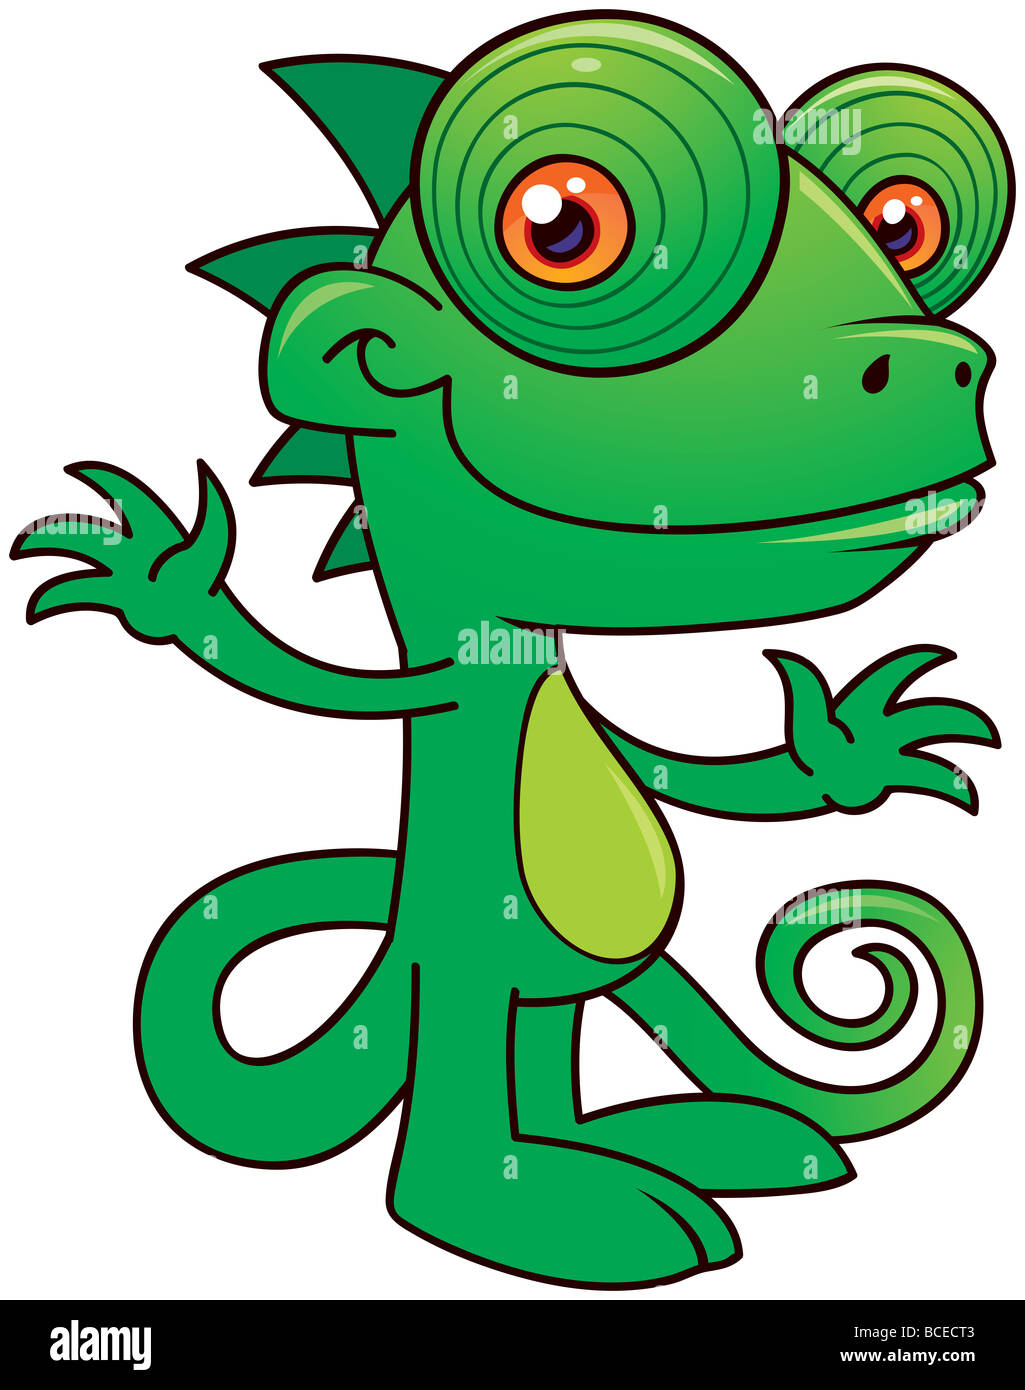 Chameleon Style Vector Illustration Of A Happy Little Chameleon Drawn In A